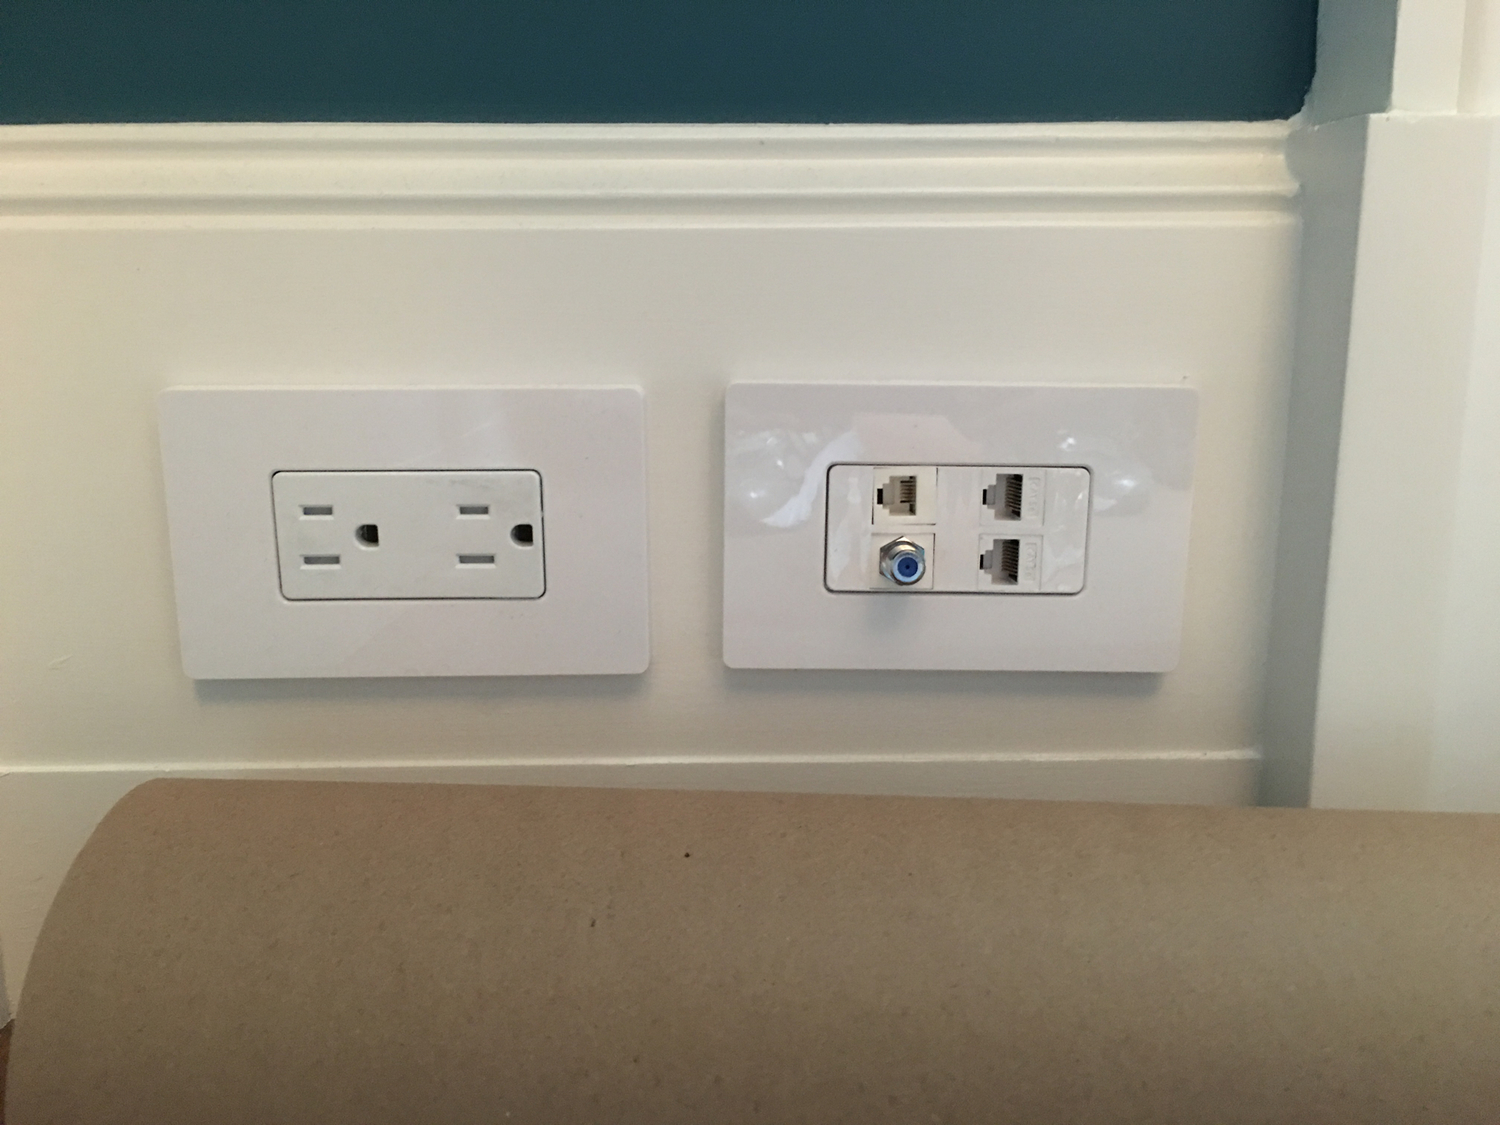 See Our Work Techdad Nyc Tech Support It Av Wiring Wall Plates All Wires Concealed In And Connected To Rack Closet